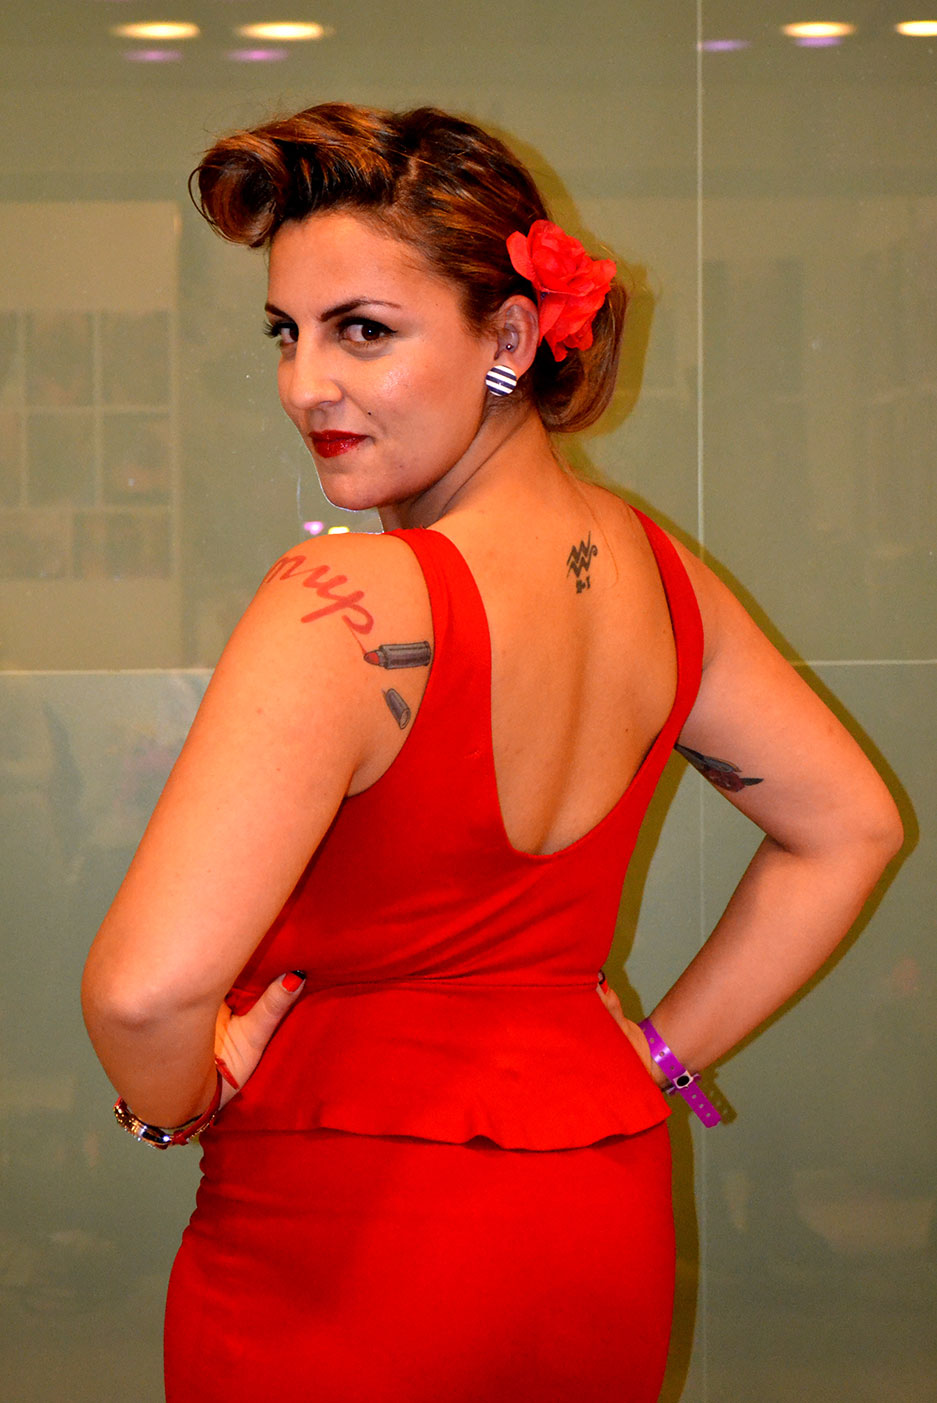 chicas pin up